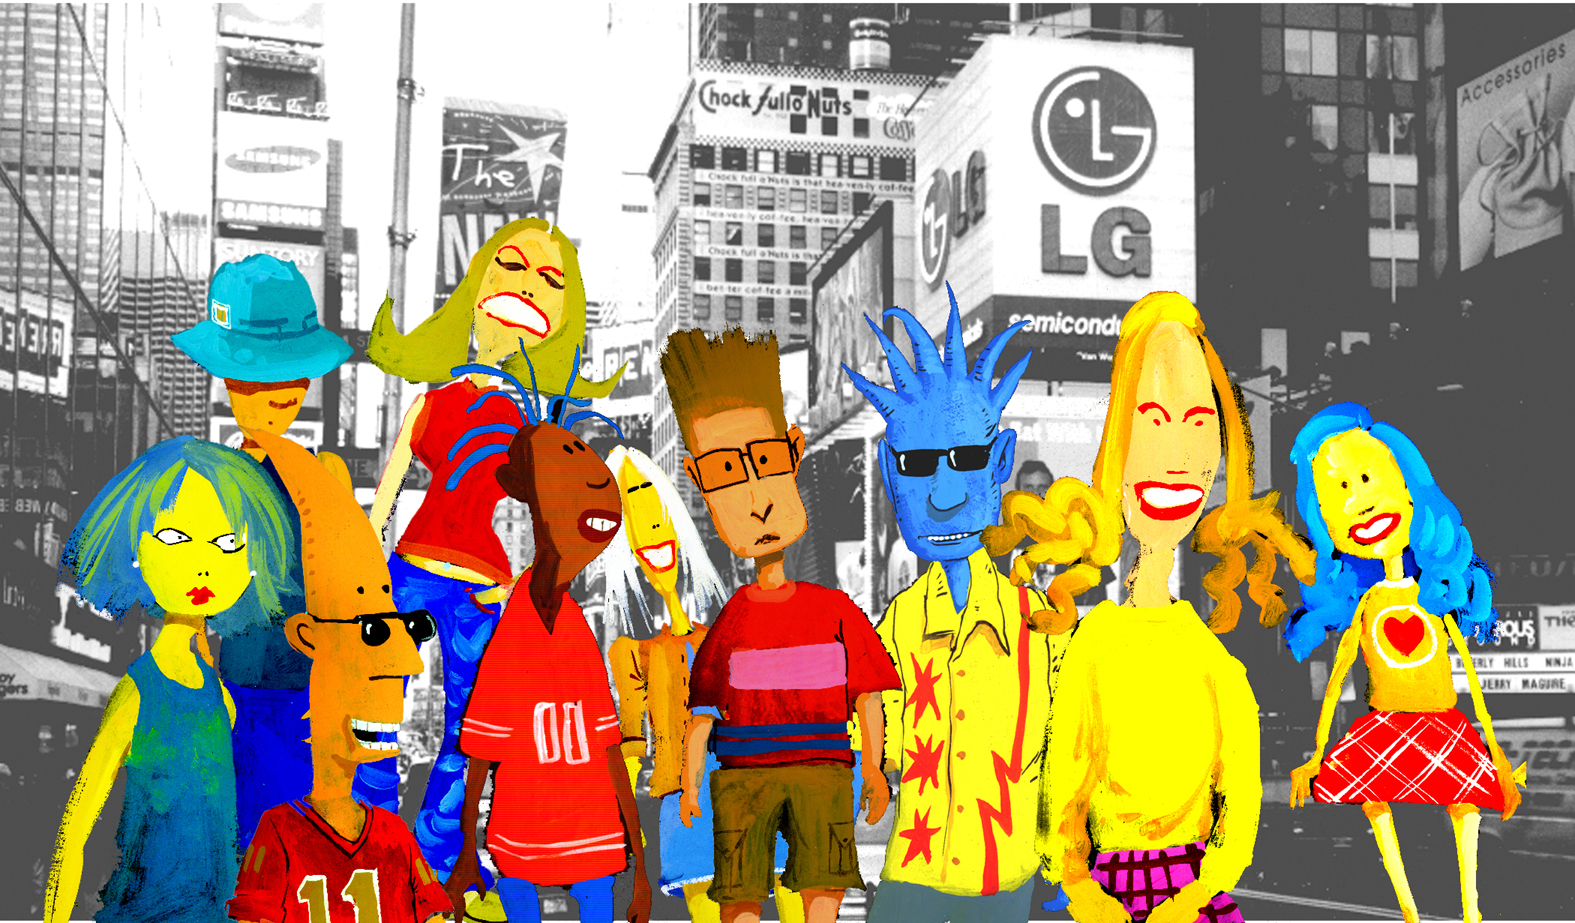 Characters for Jerolemon Street